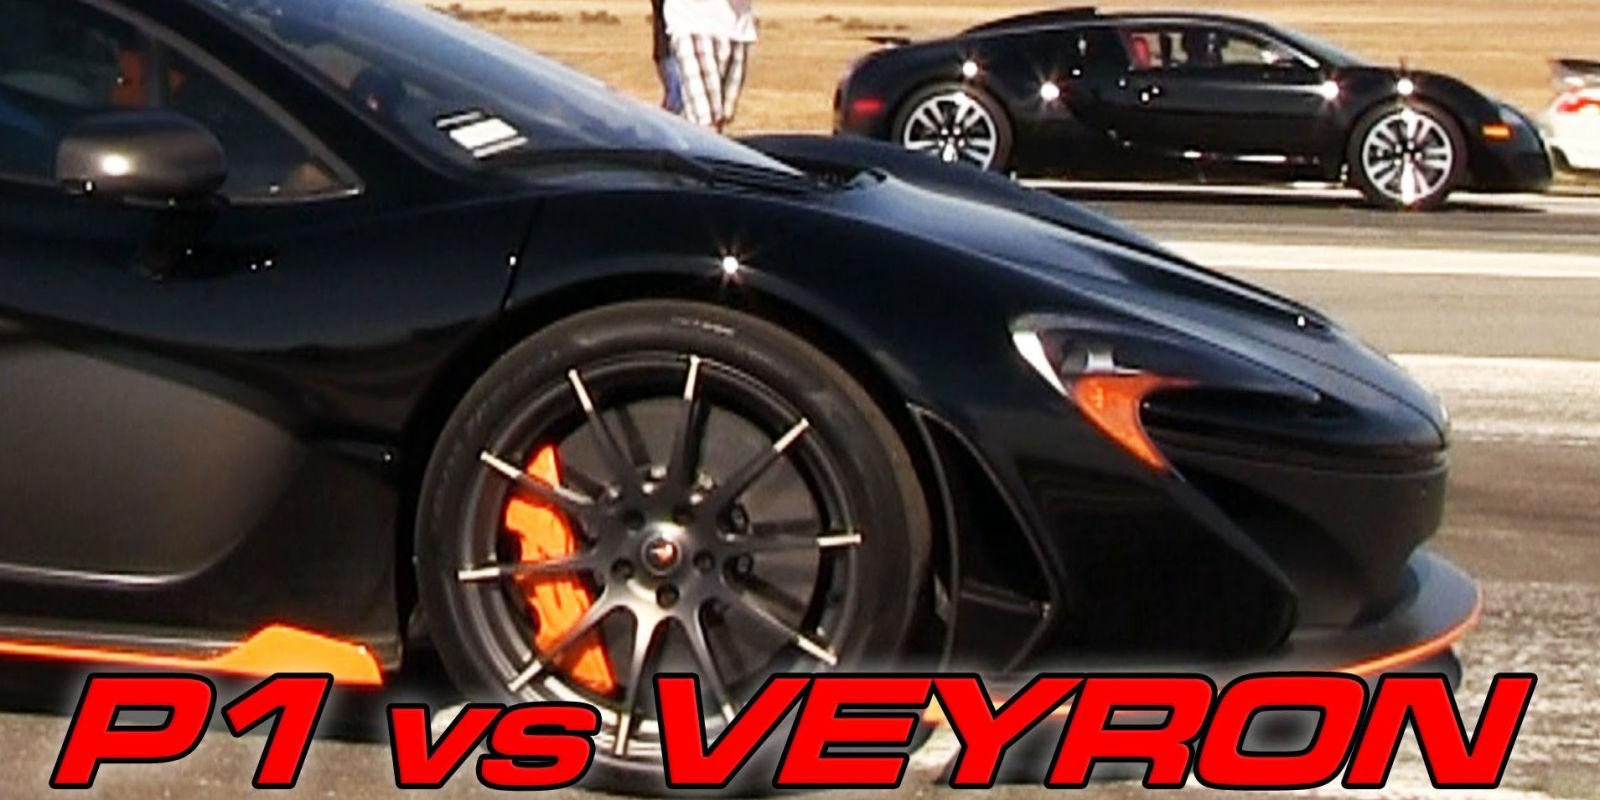 McLaren P1 Slays Bugatti Veyron in Airstrip Drag Race